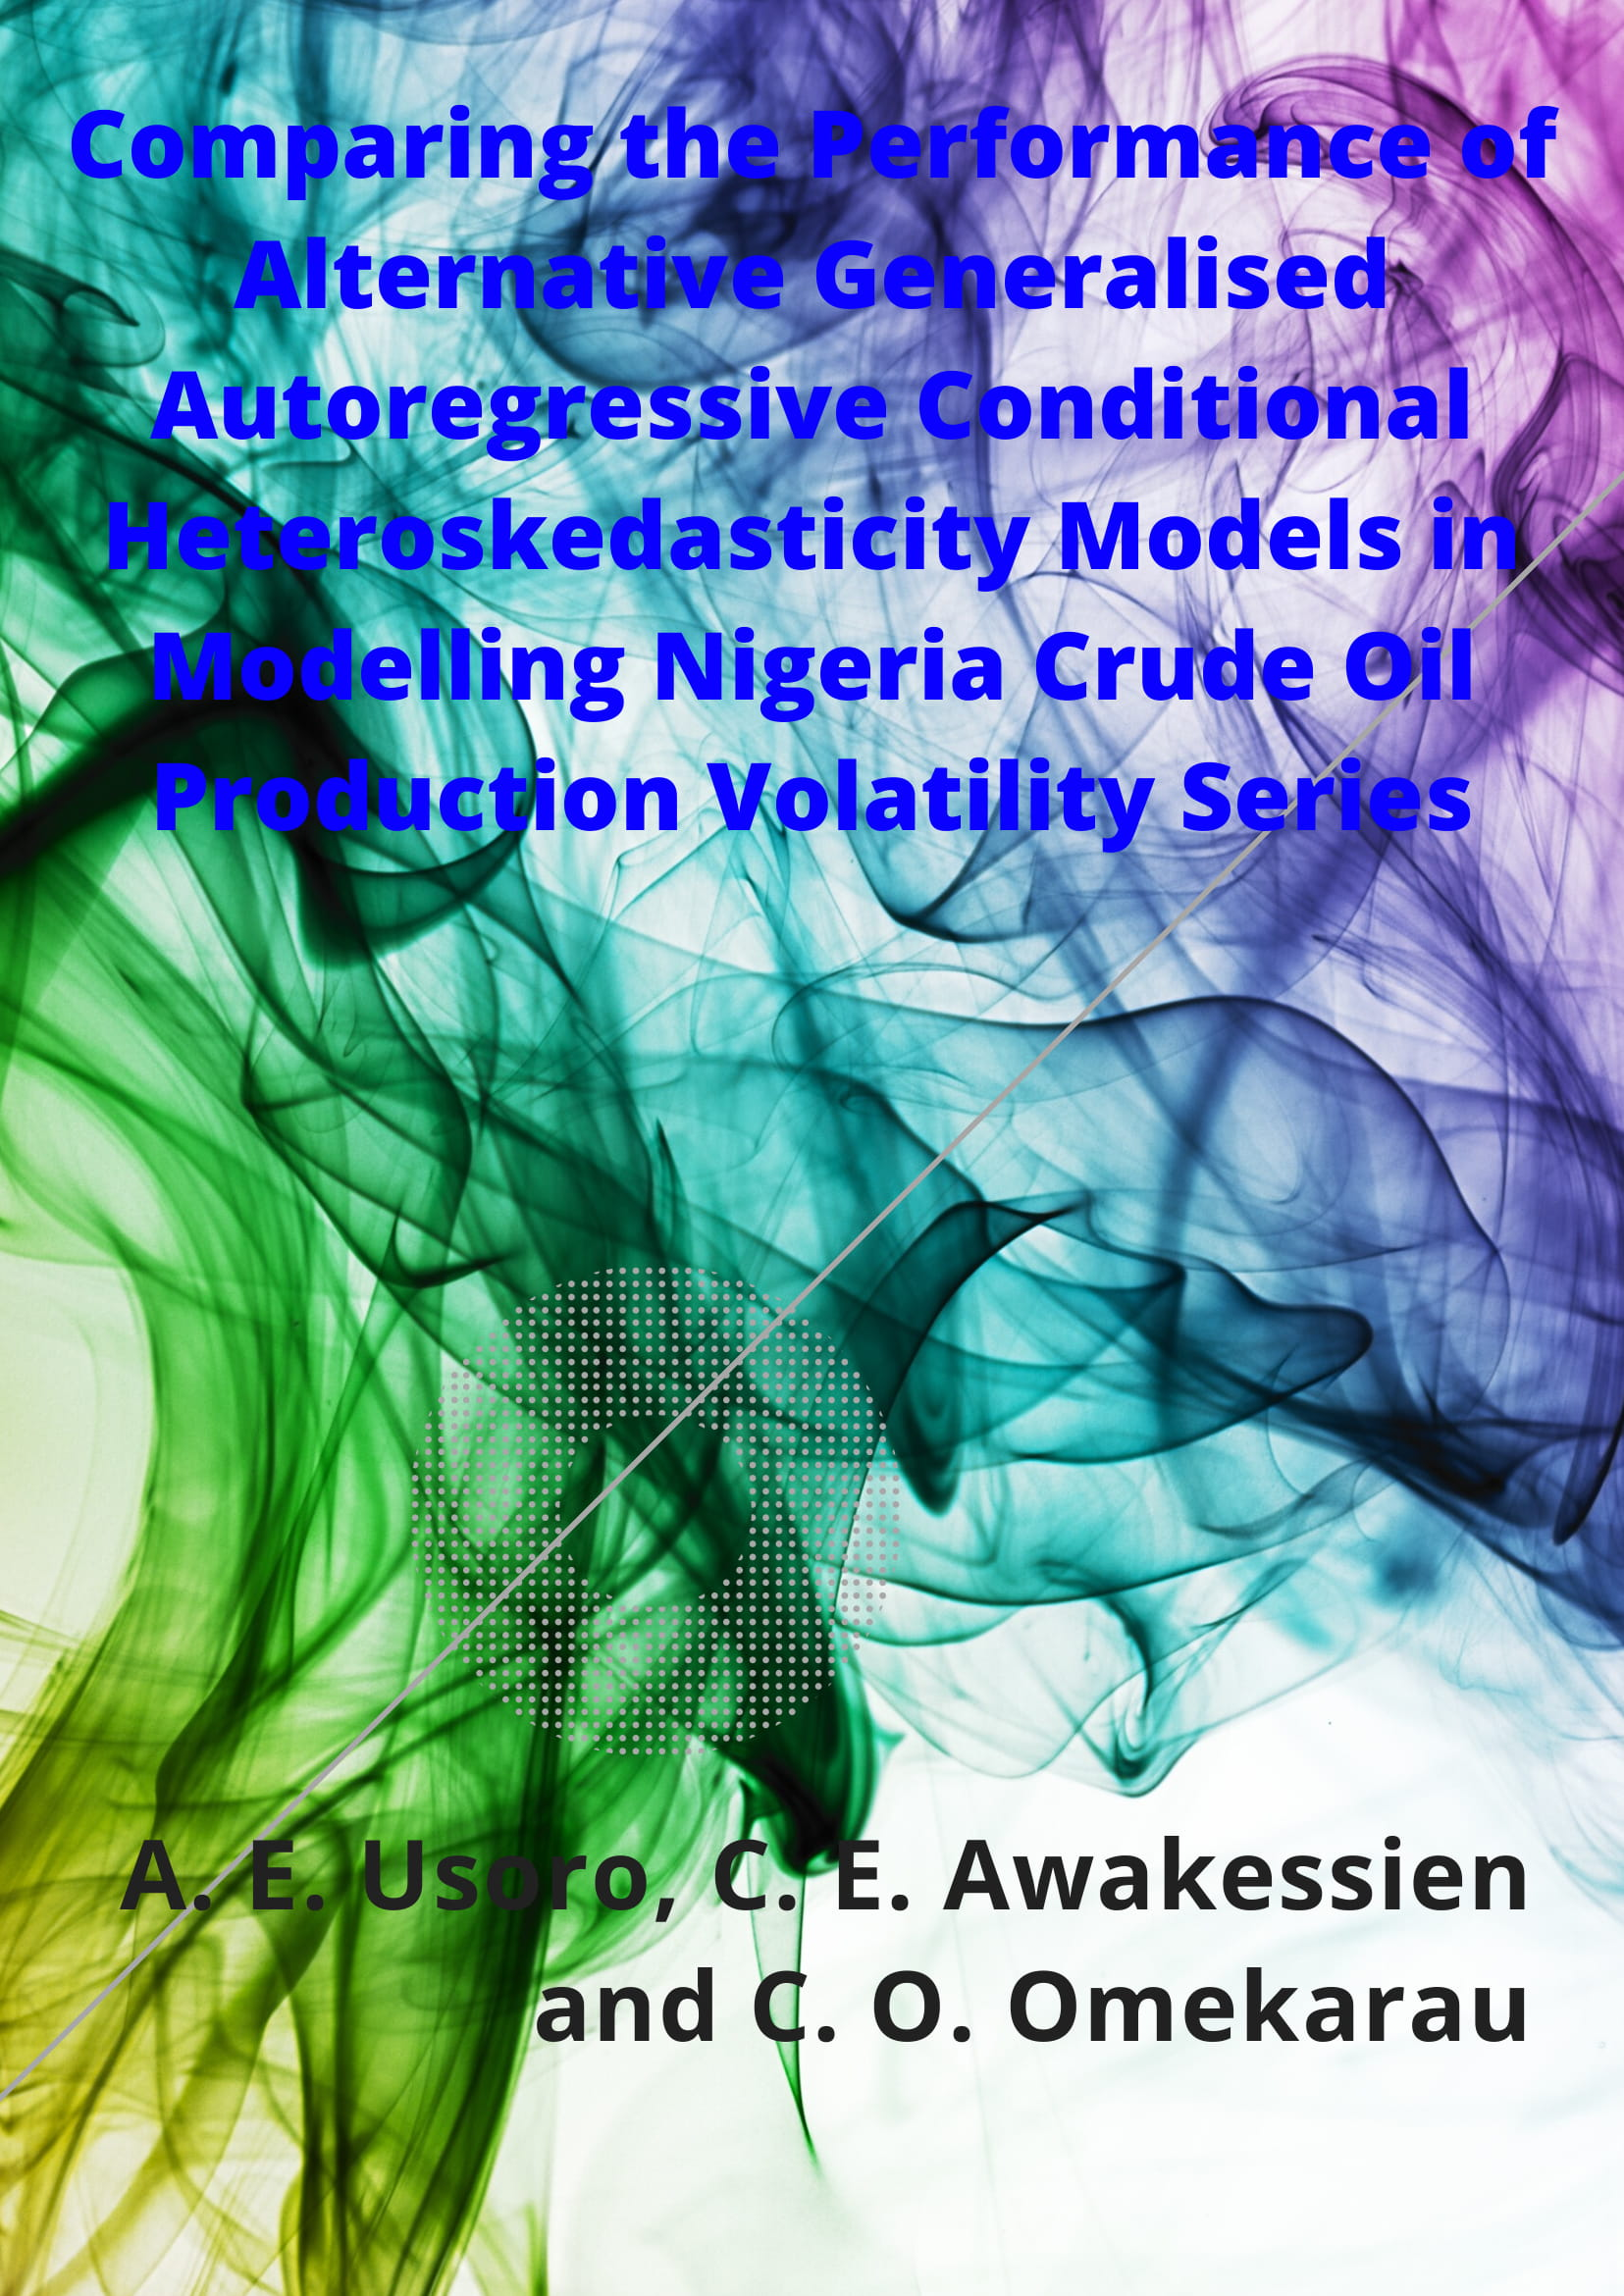 Comparing the Performance of Alternative Generalised Autoregressive Conditional Heteroskedasticity Models in Modelling Nigeria Crude Oil Production Volatility Series image